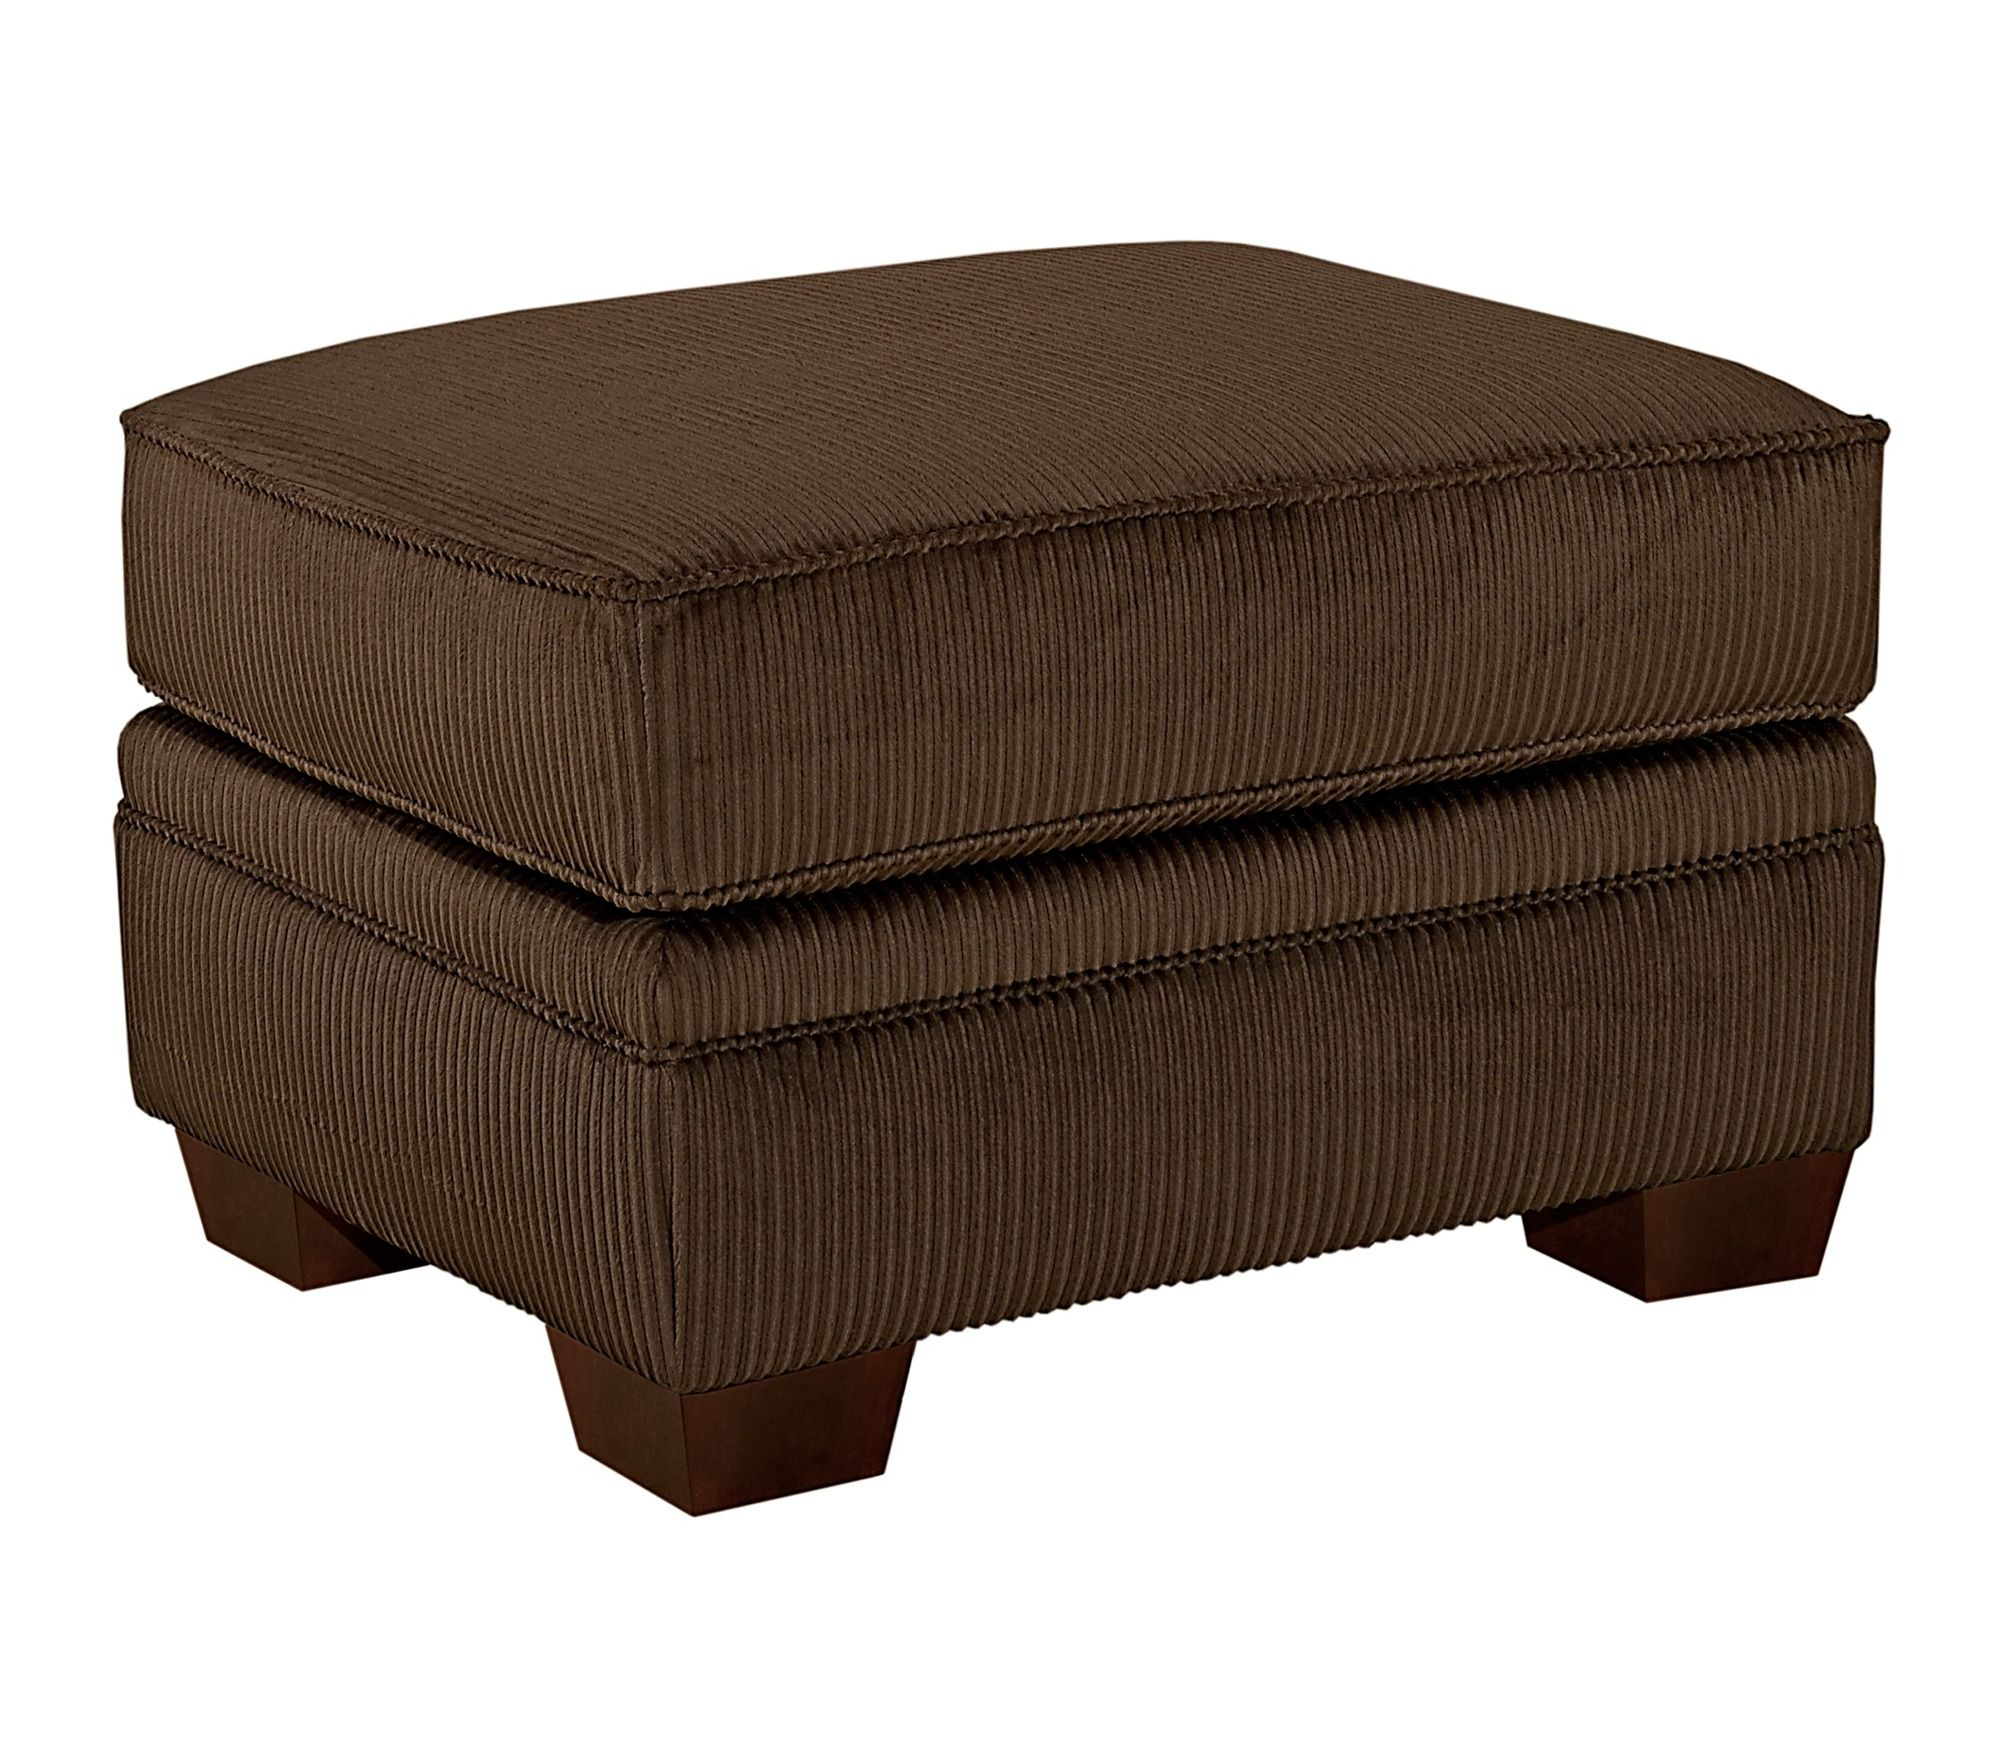 Astonishing Zachary Ottoman Broyhill Home Gallery Stores Ottoman Dailytribune Chair Design For Home Dailytribuneorg